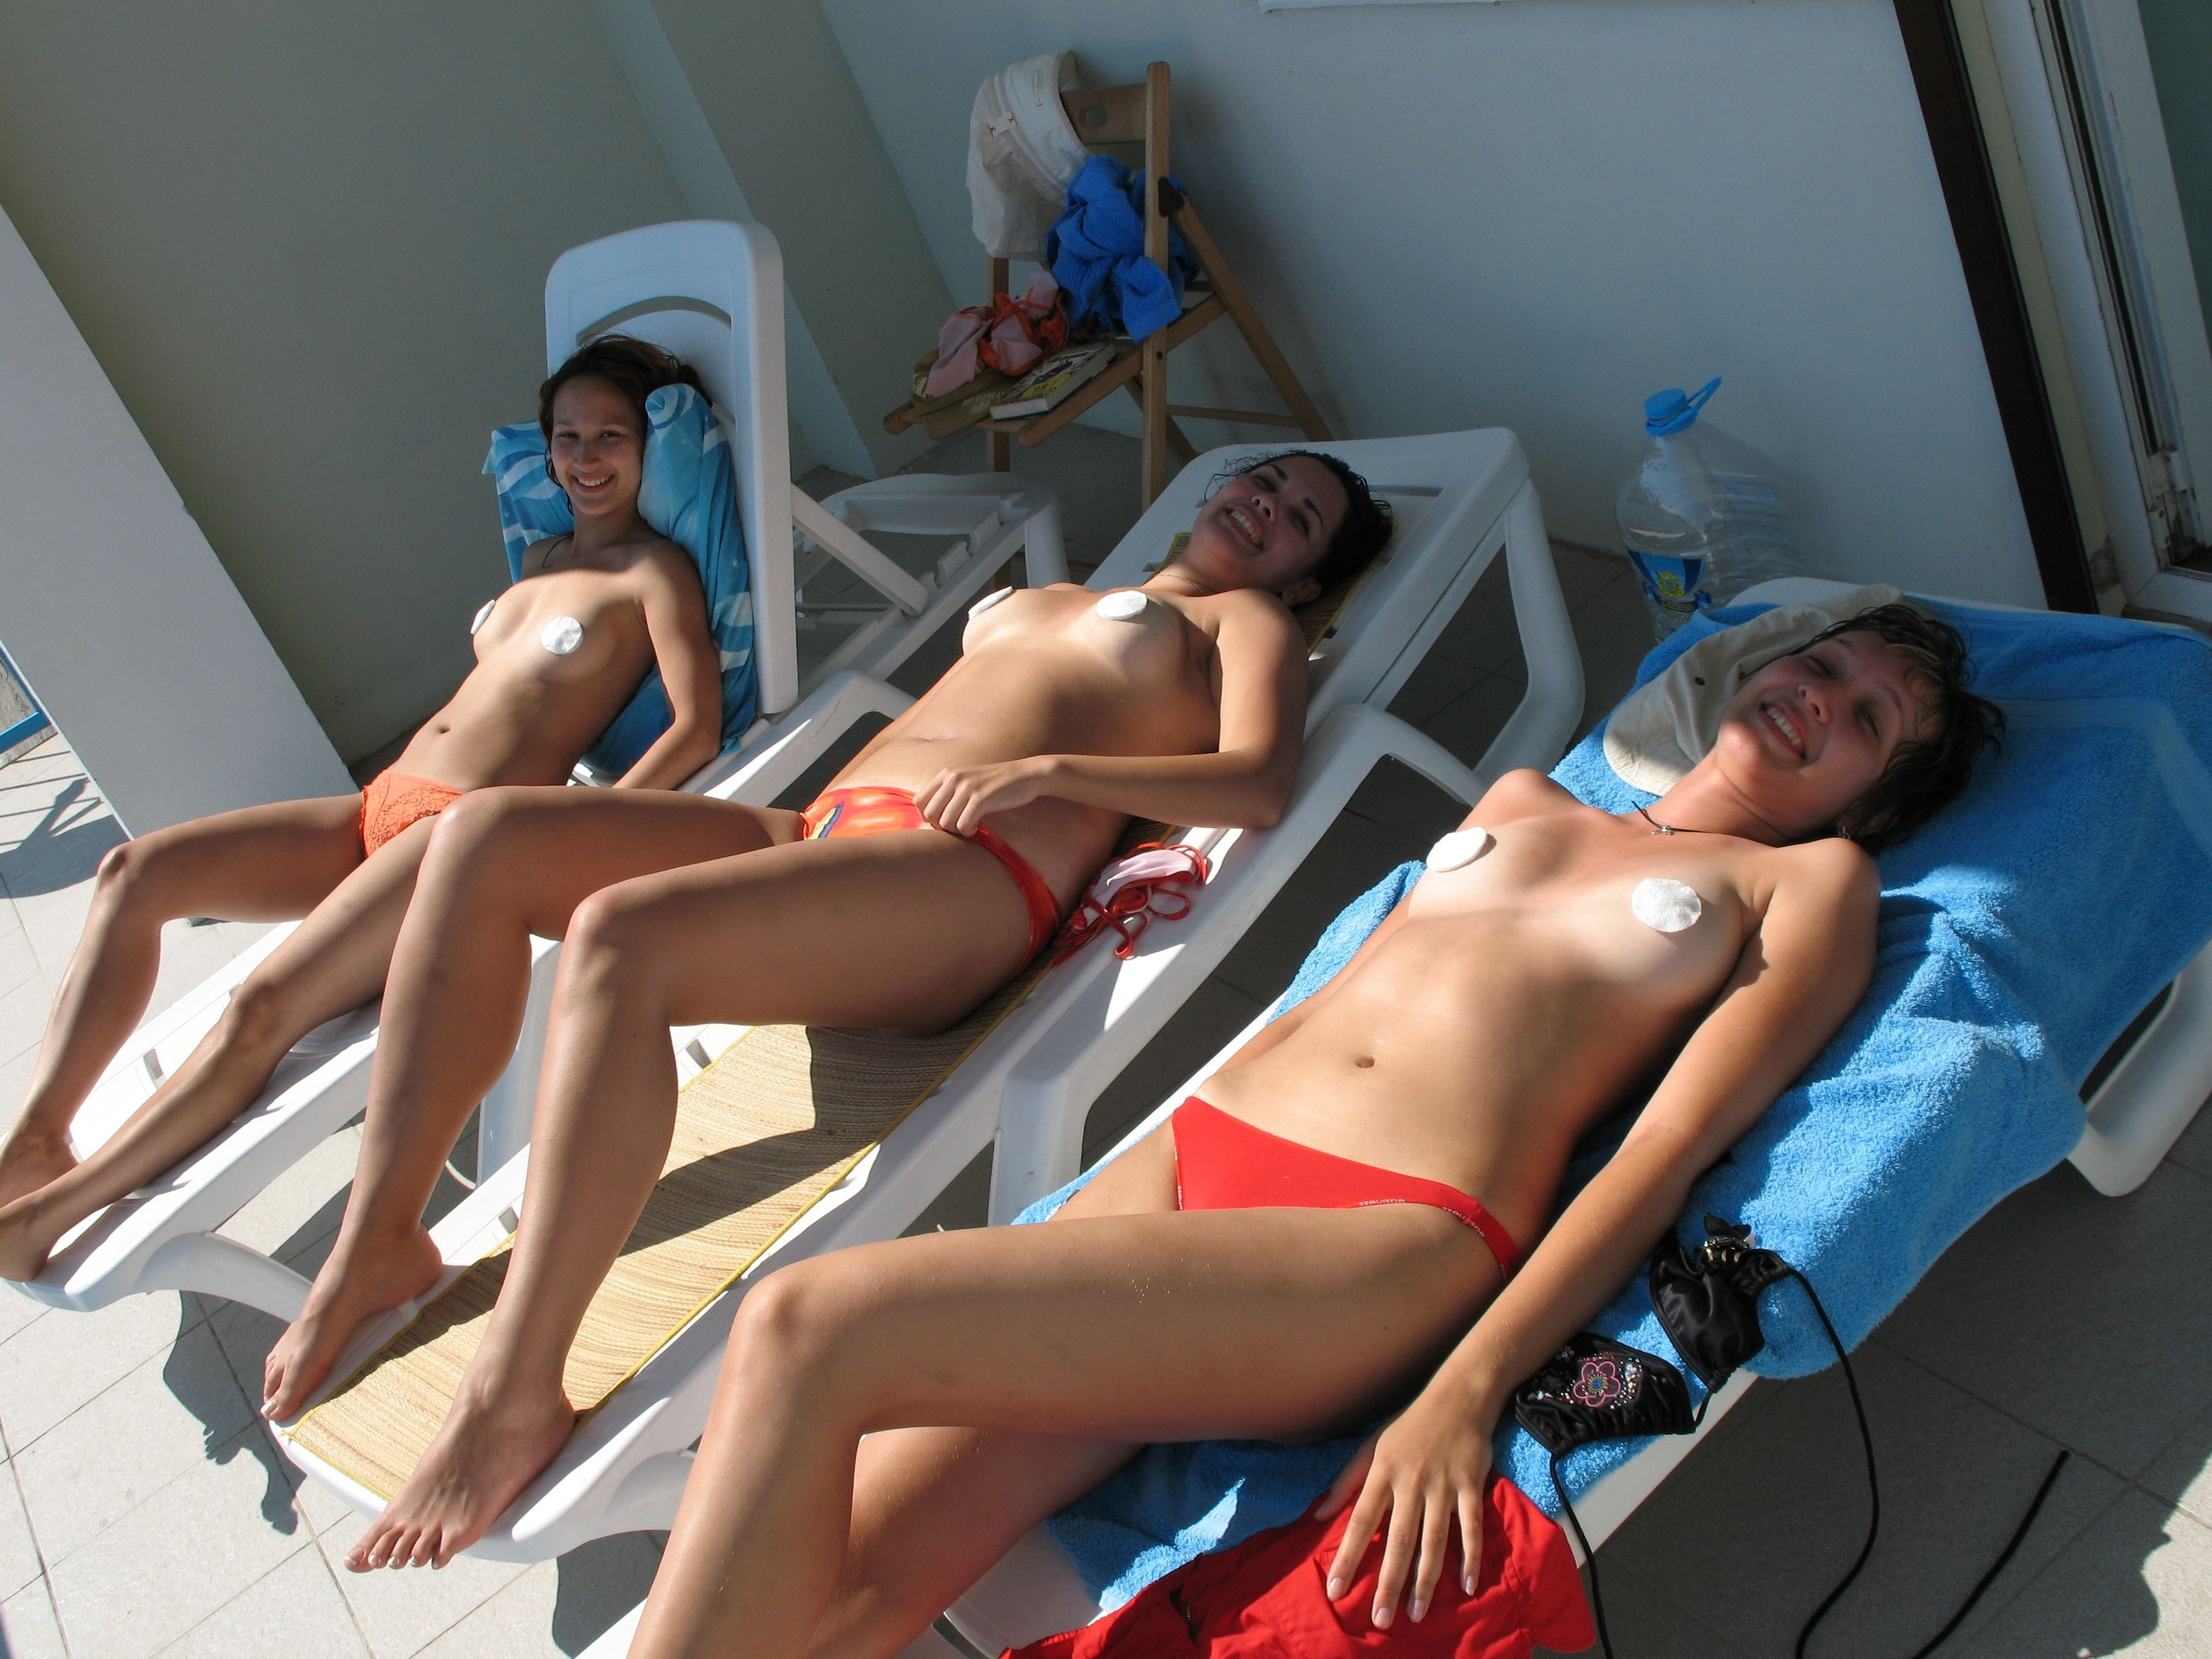 Afterschool tanning 5 the one that would never date you 1